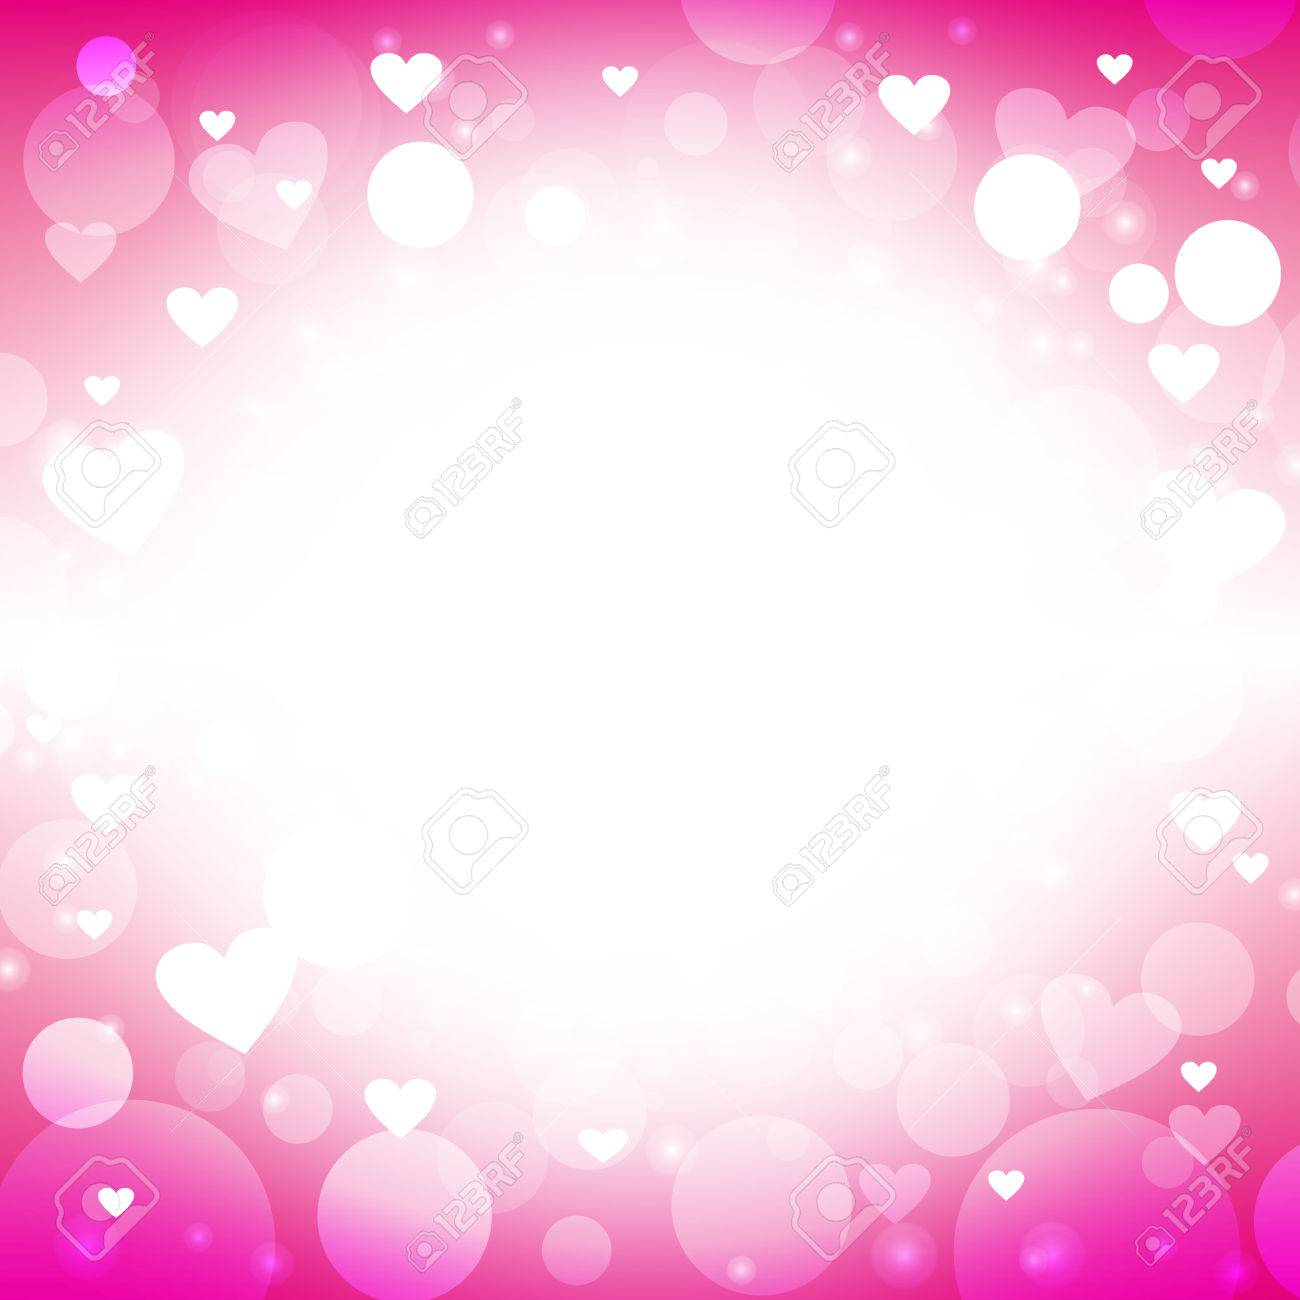 heart shape vector abstract magenta background design ideas for valentines day love cards